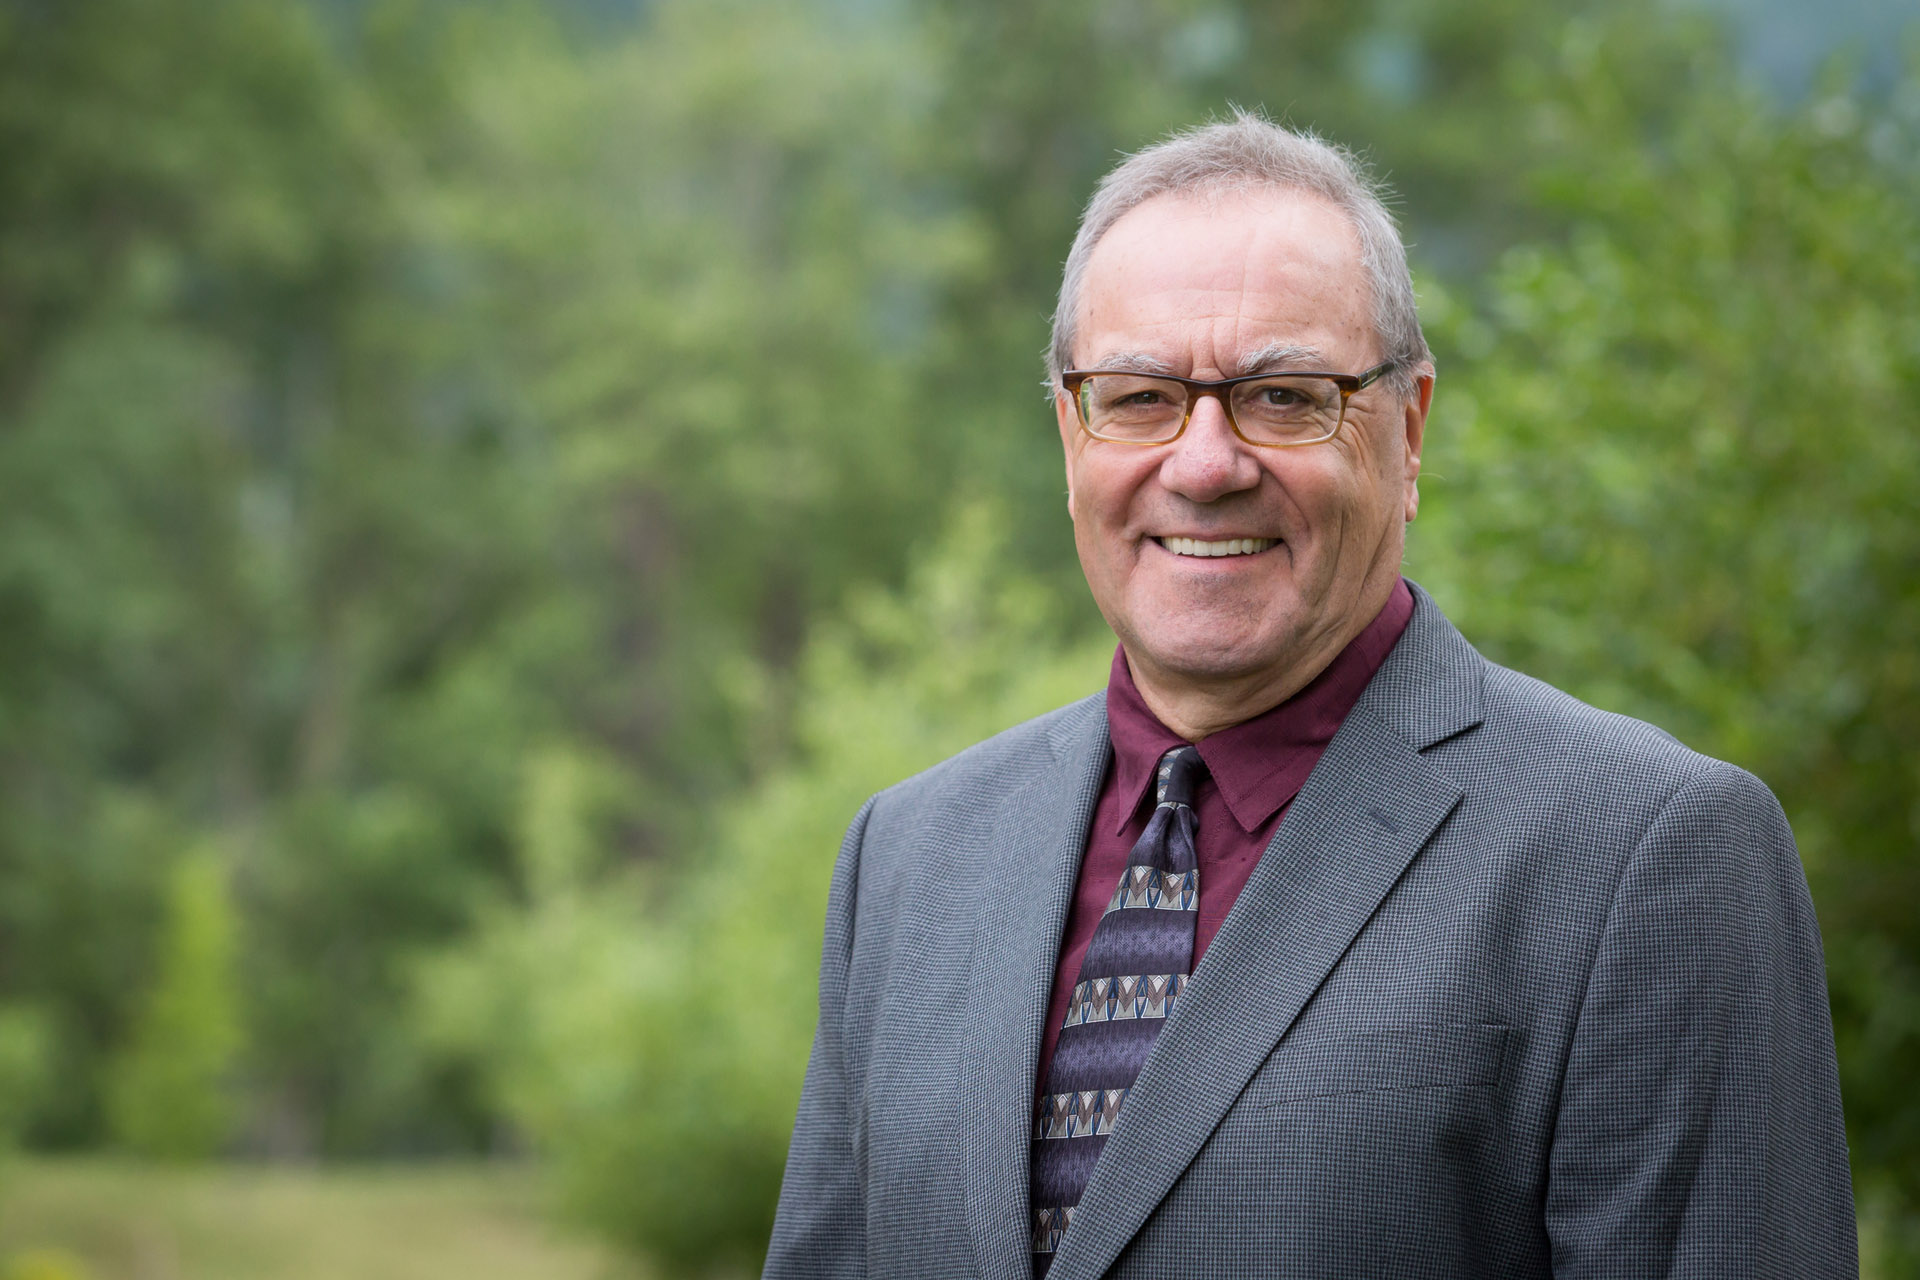 Incumbent Sparwood District Councillor seeking re-election.